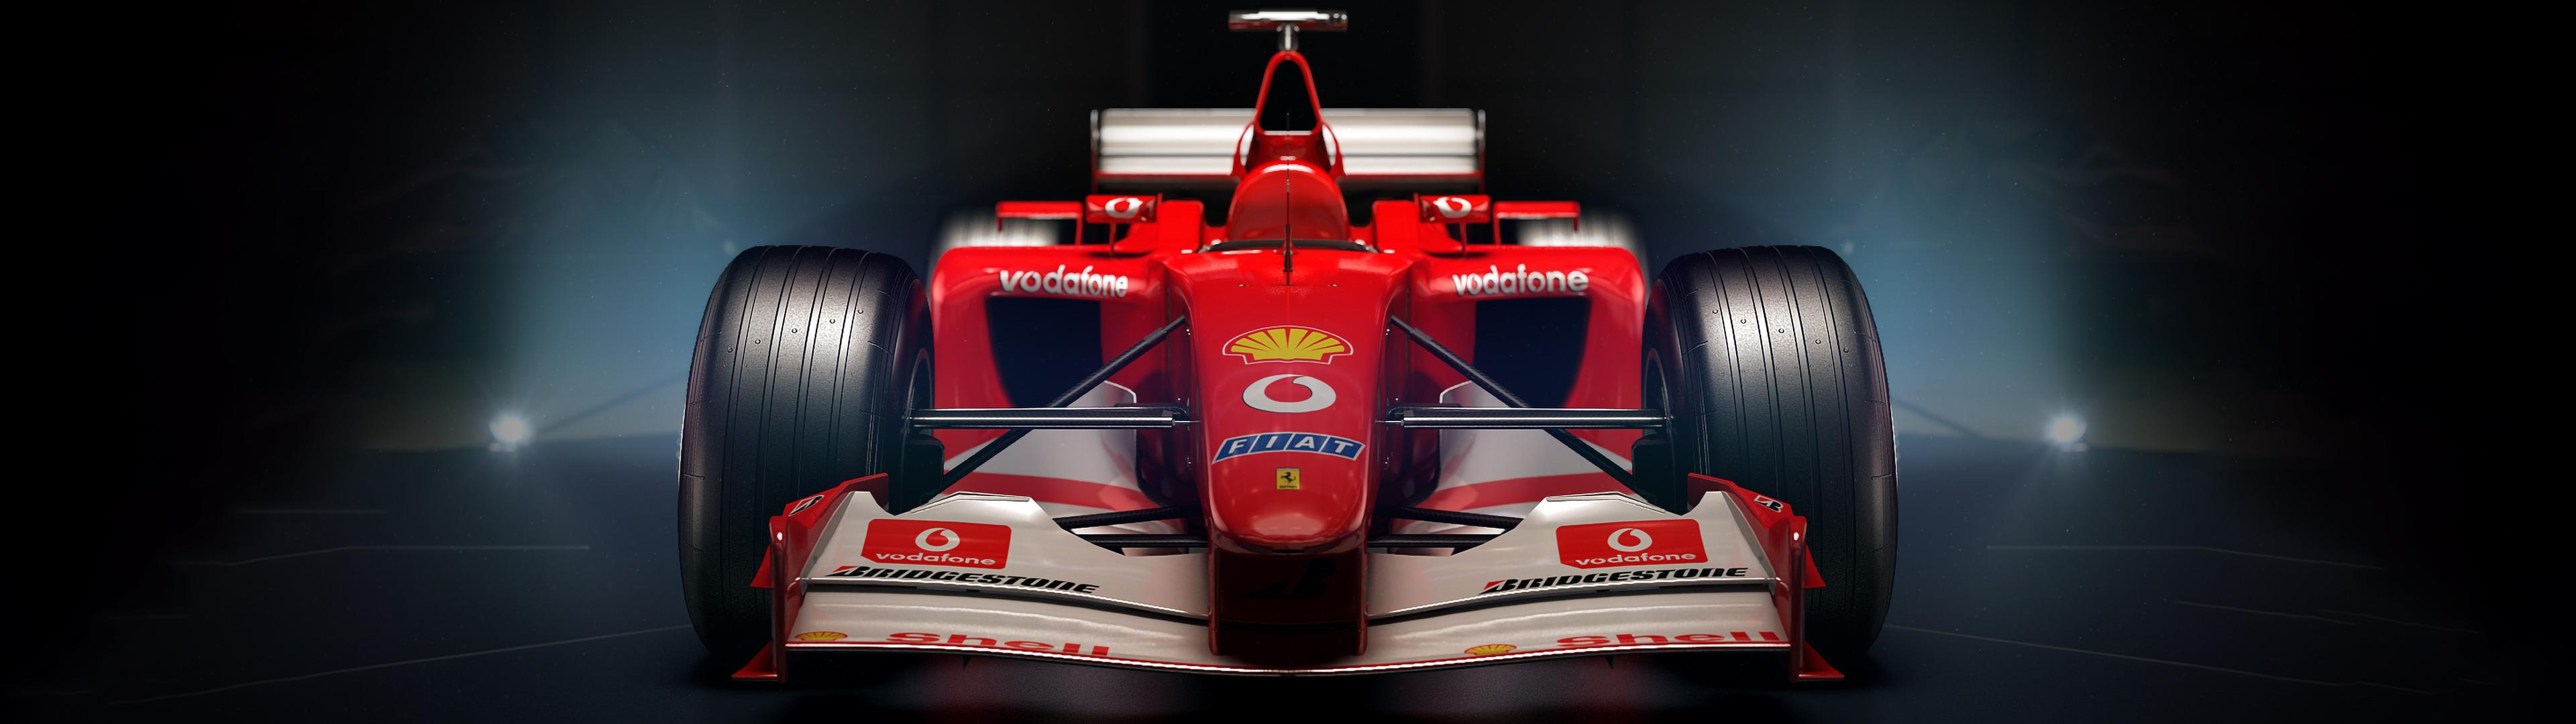 We hope you enjoy our growing collection of hd. Request Sebastian Vettel Or Michael Schumacher 5760x1080 Wallpaper Multiwall